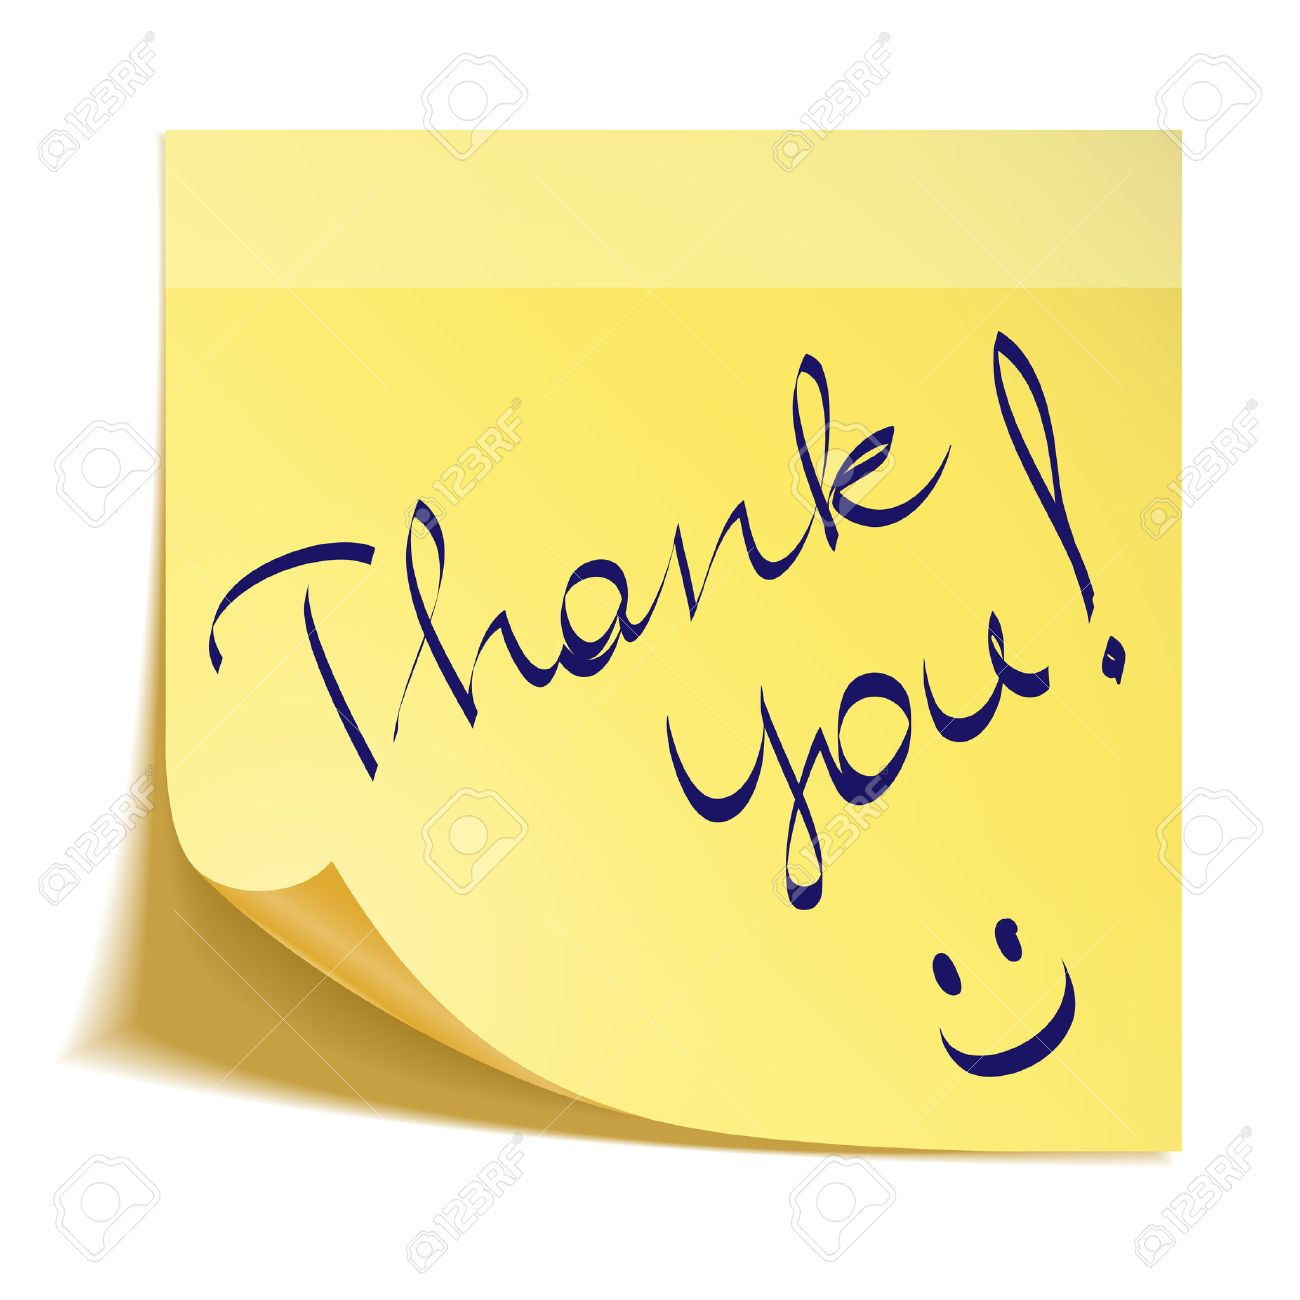 thank you note with smiley royalty free cliparts vectors and stock